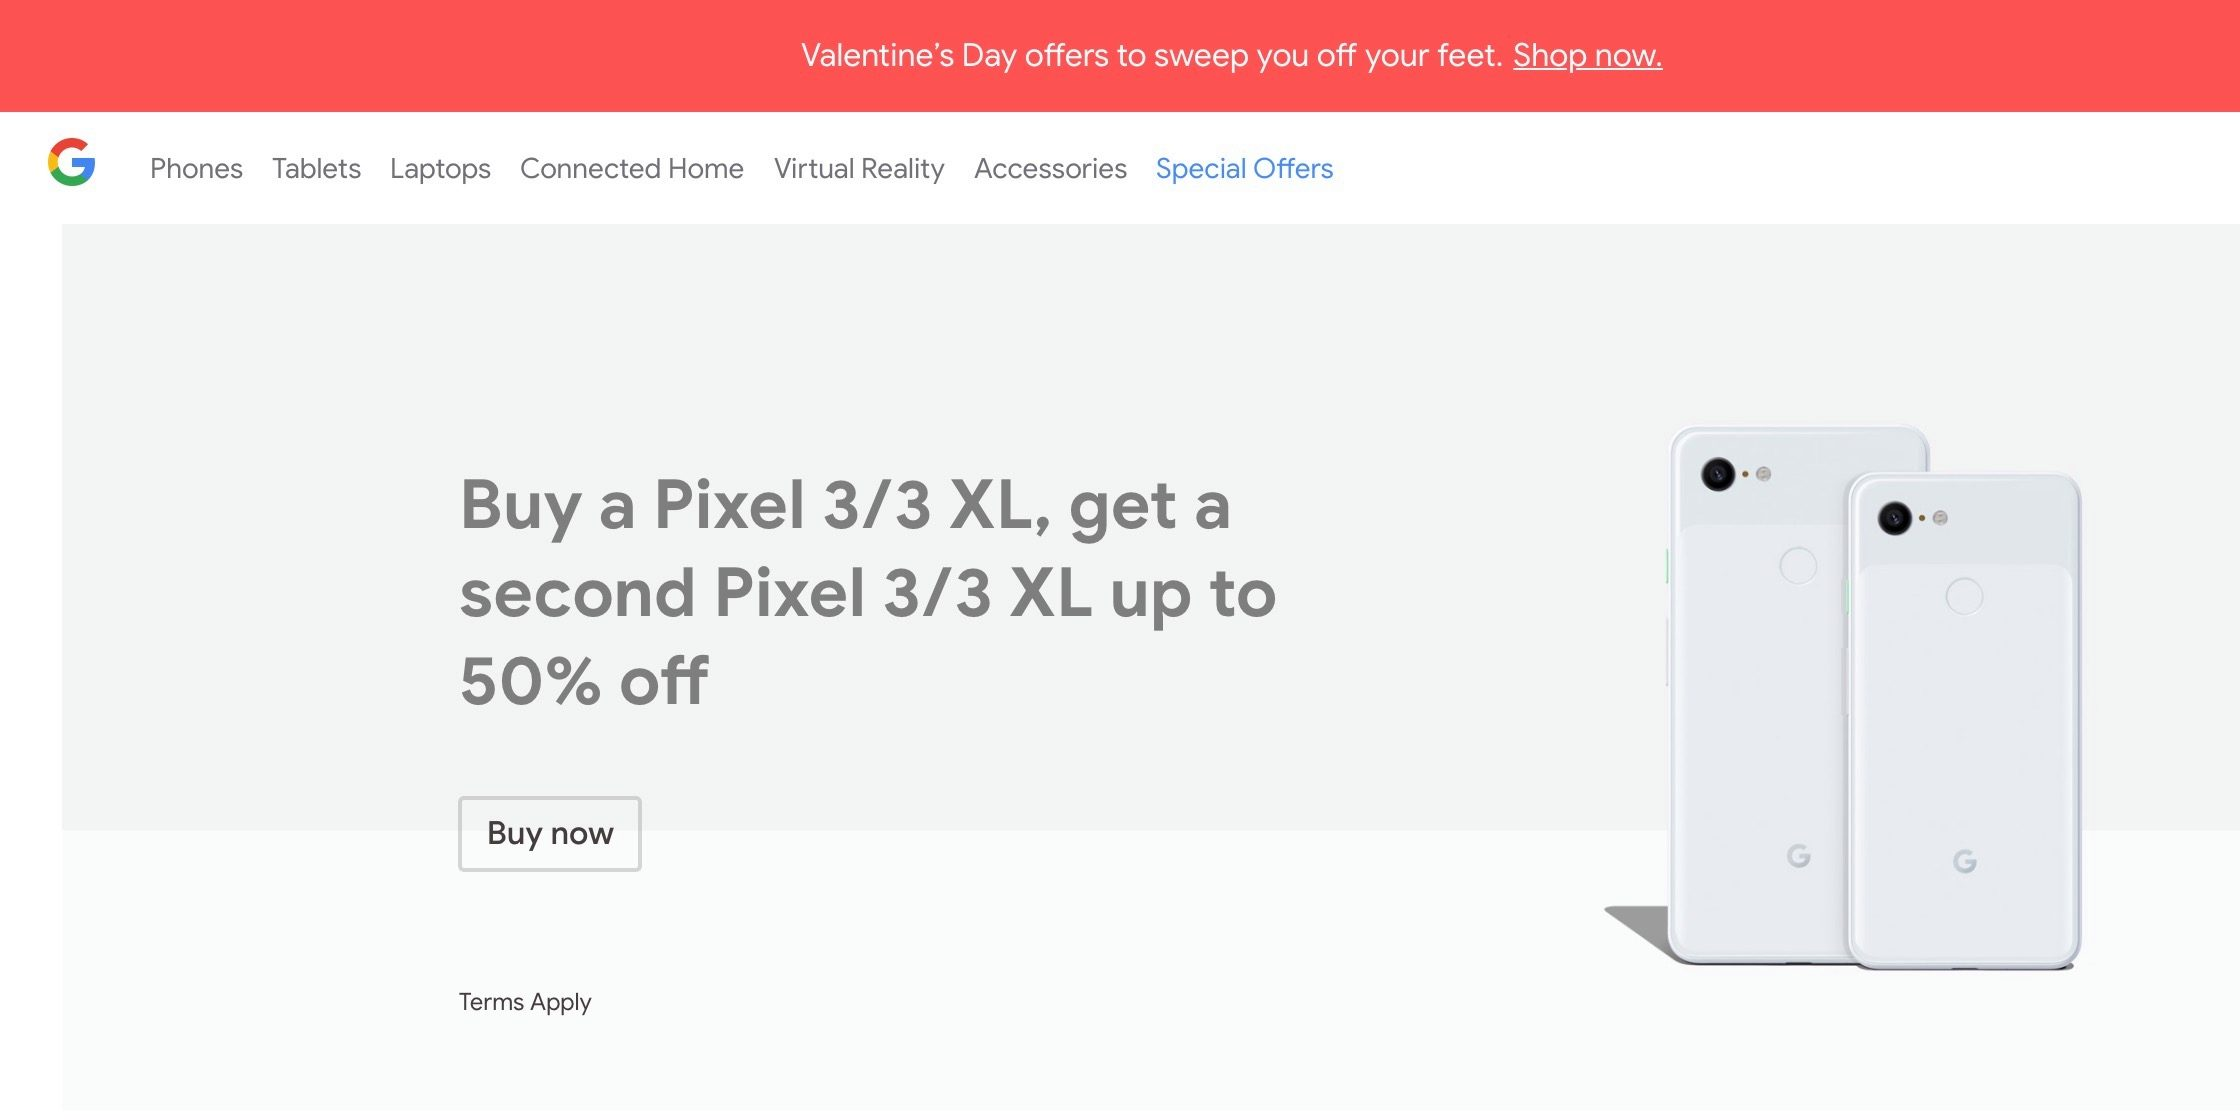 Google Store brings back Pixel 3 & 3 XL BOGO 'up to 50% off' deal for February